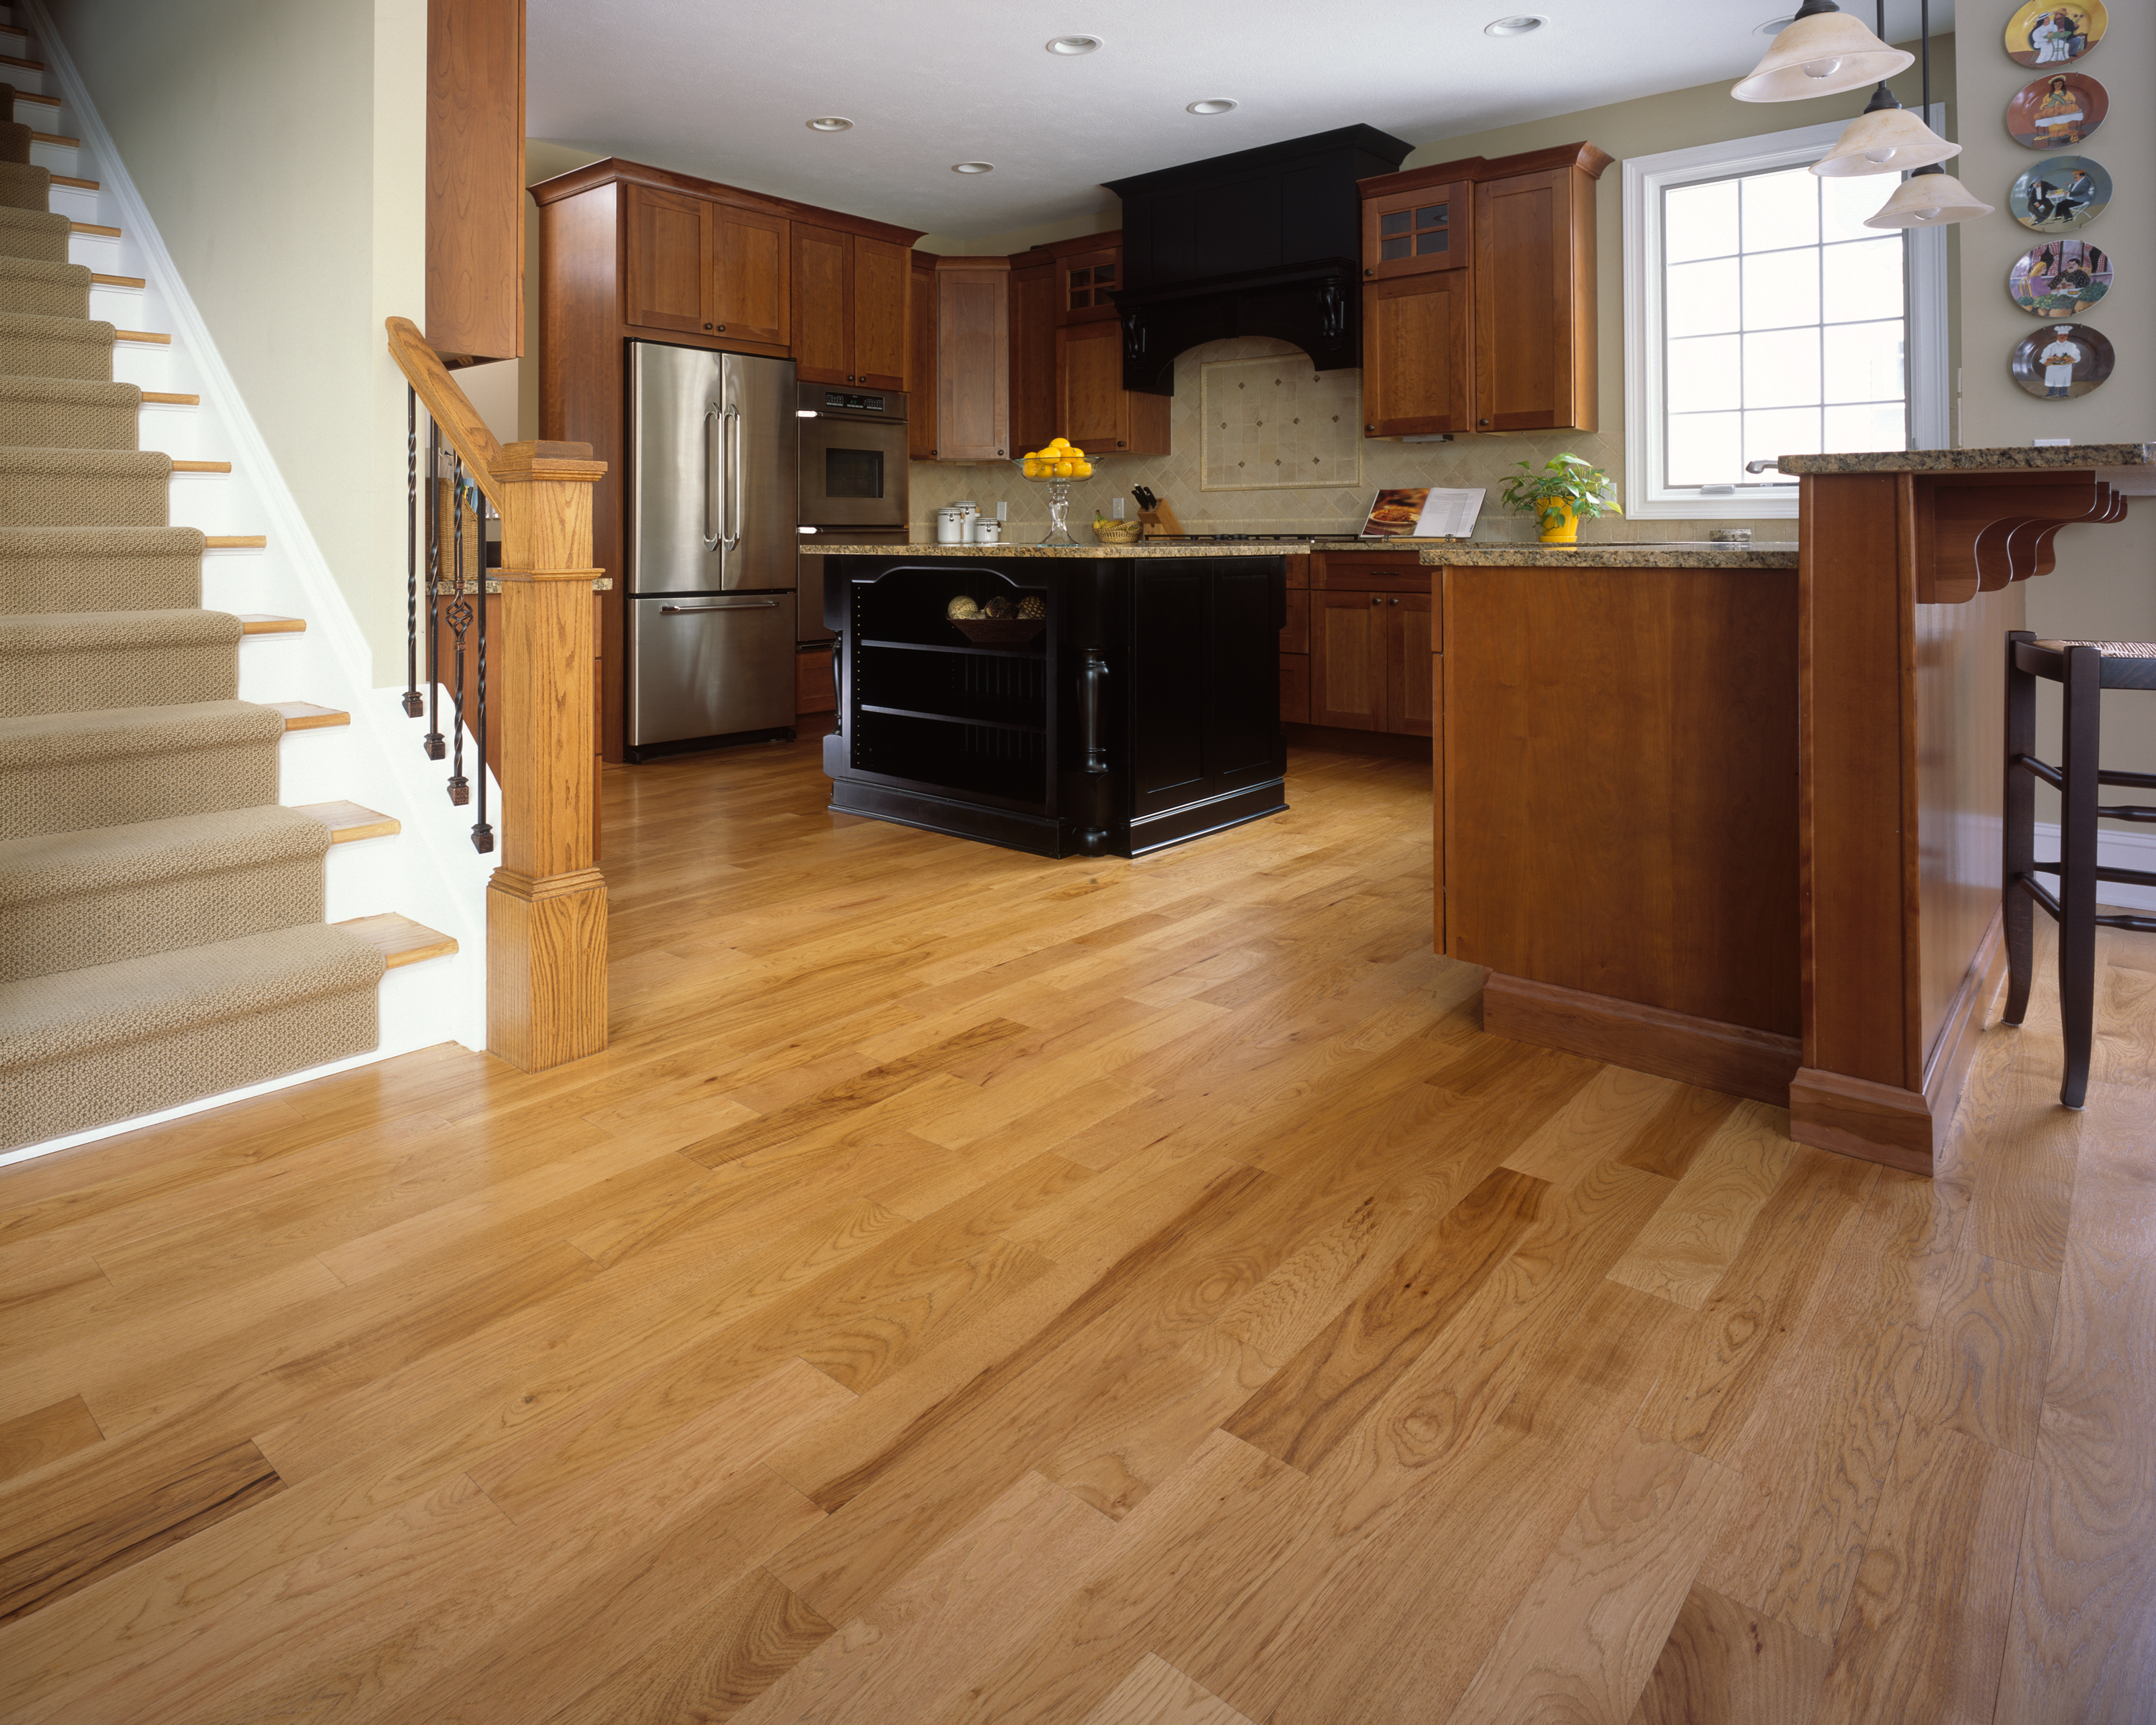 Wood Flooring for Kitchen